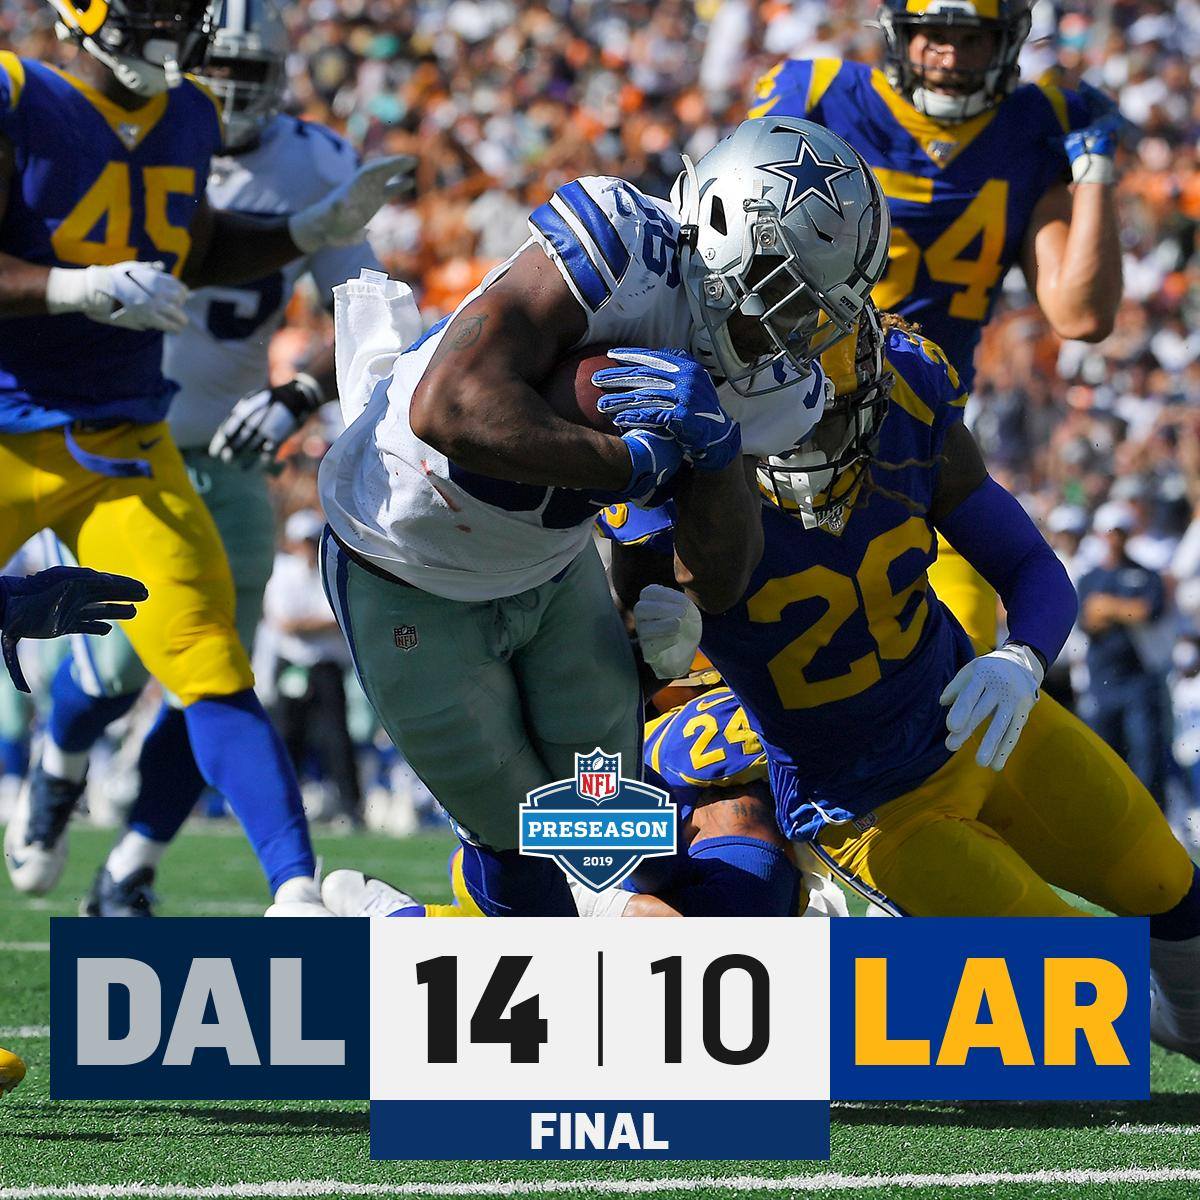 FINAL: @dallascowboys over the Rams in Hawaii! #DALvsLAR<br>http://pic.twitter.com/WPsTKmAhCG